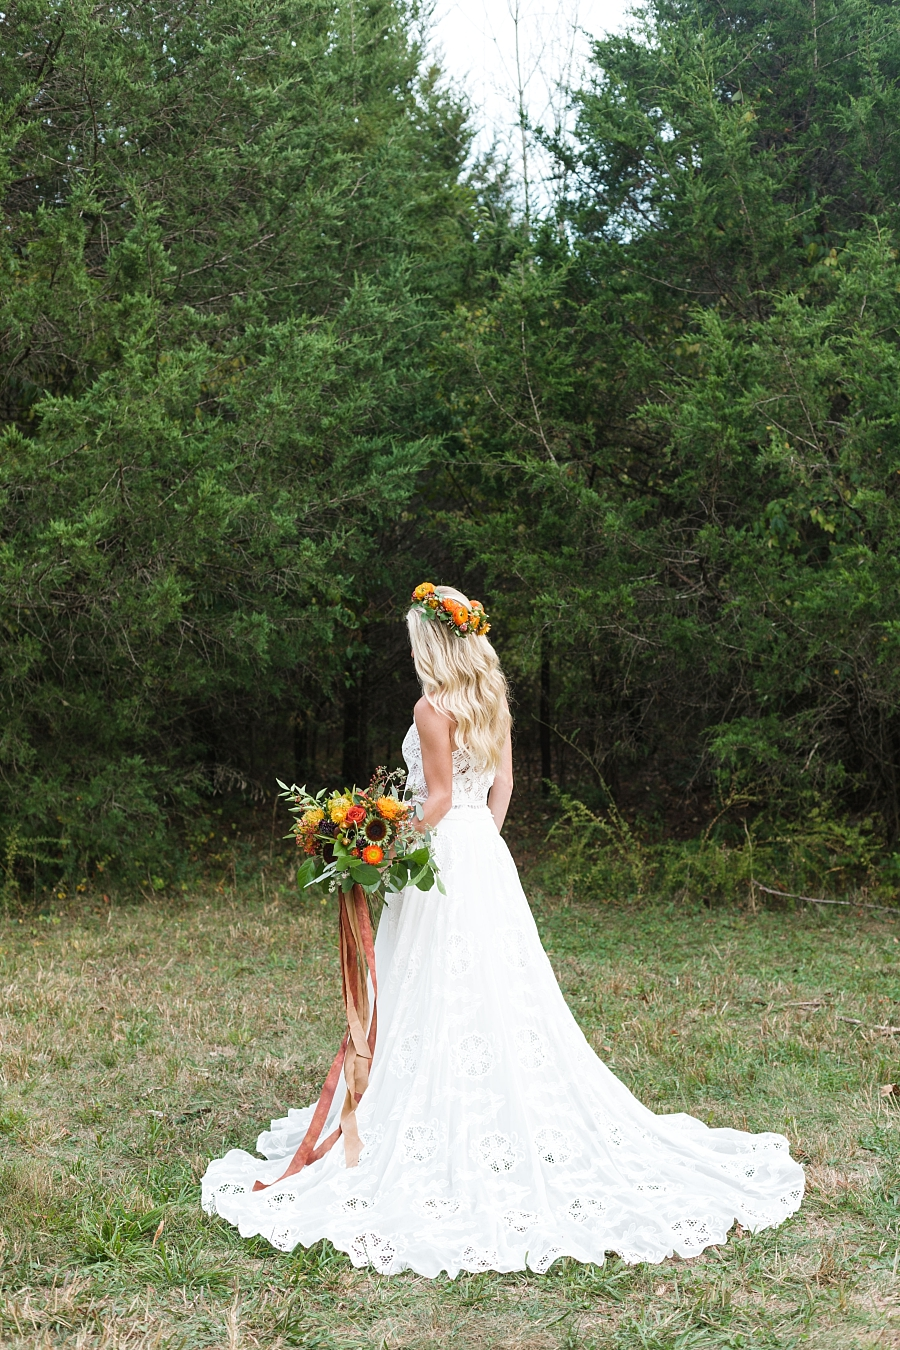 Stacy-Anderson-Photography-Cedarwood-Weddings-Nashville-Destination-Wedding-Photographer_0058.jpg